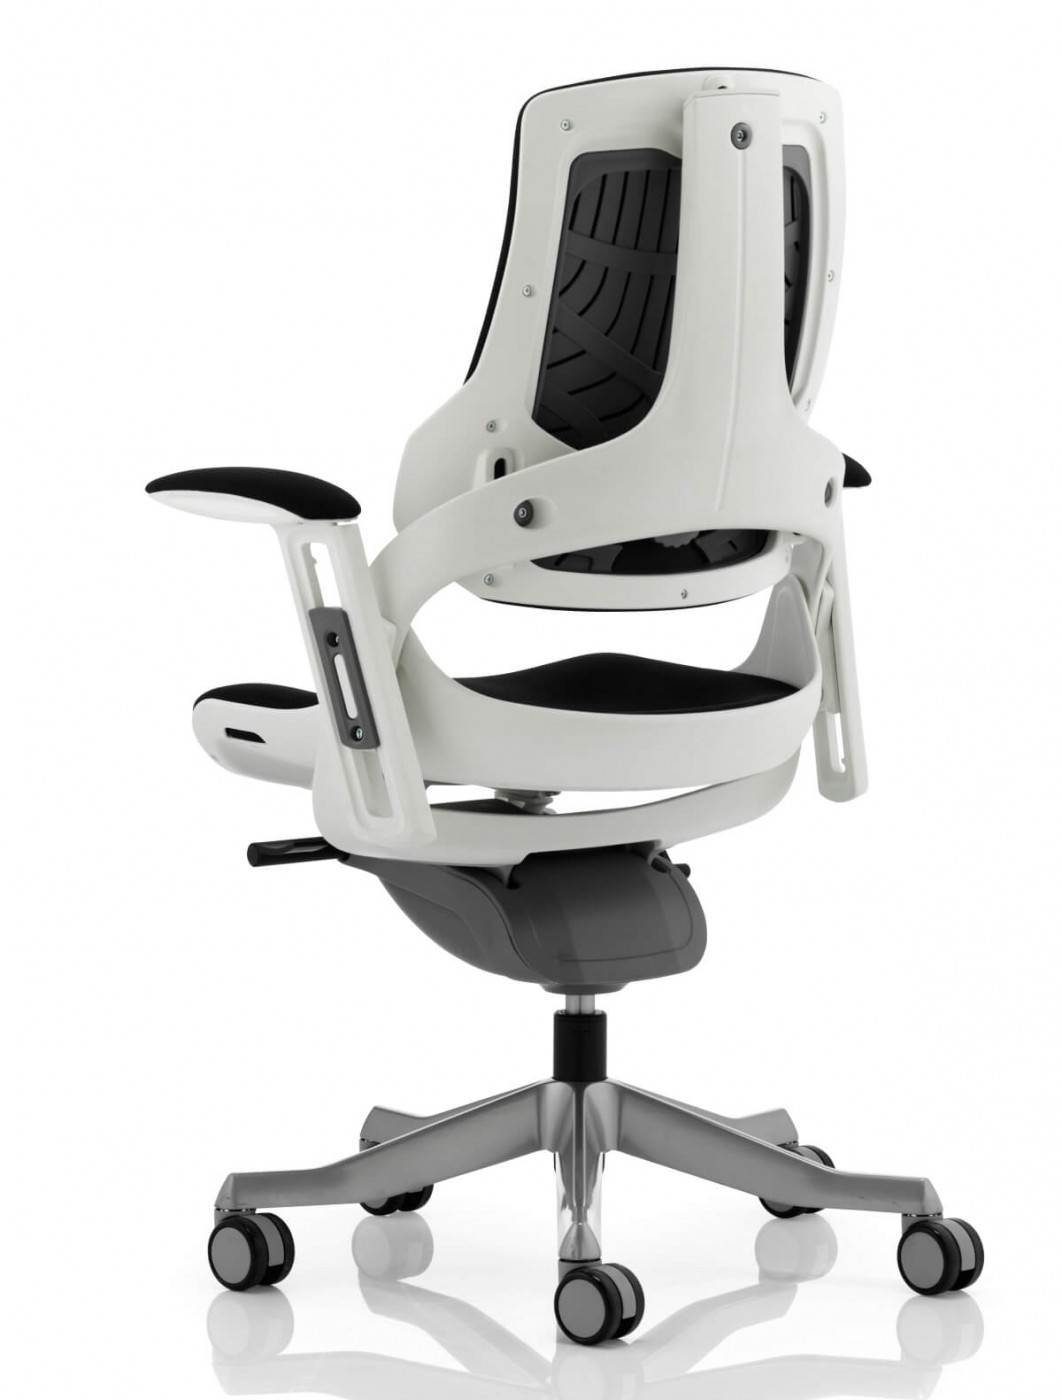 Office Chairs - Zure Executive Fabric Office Chair EX000114